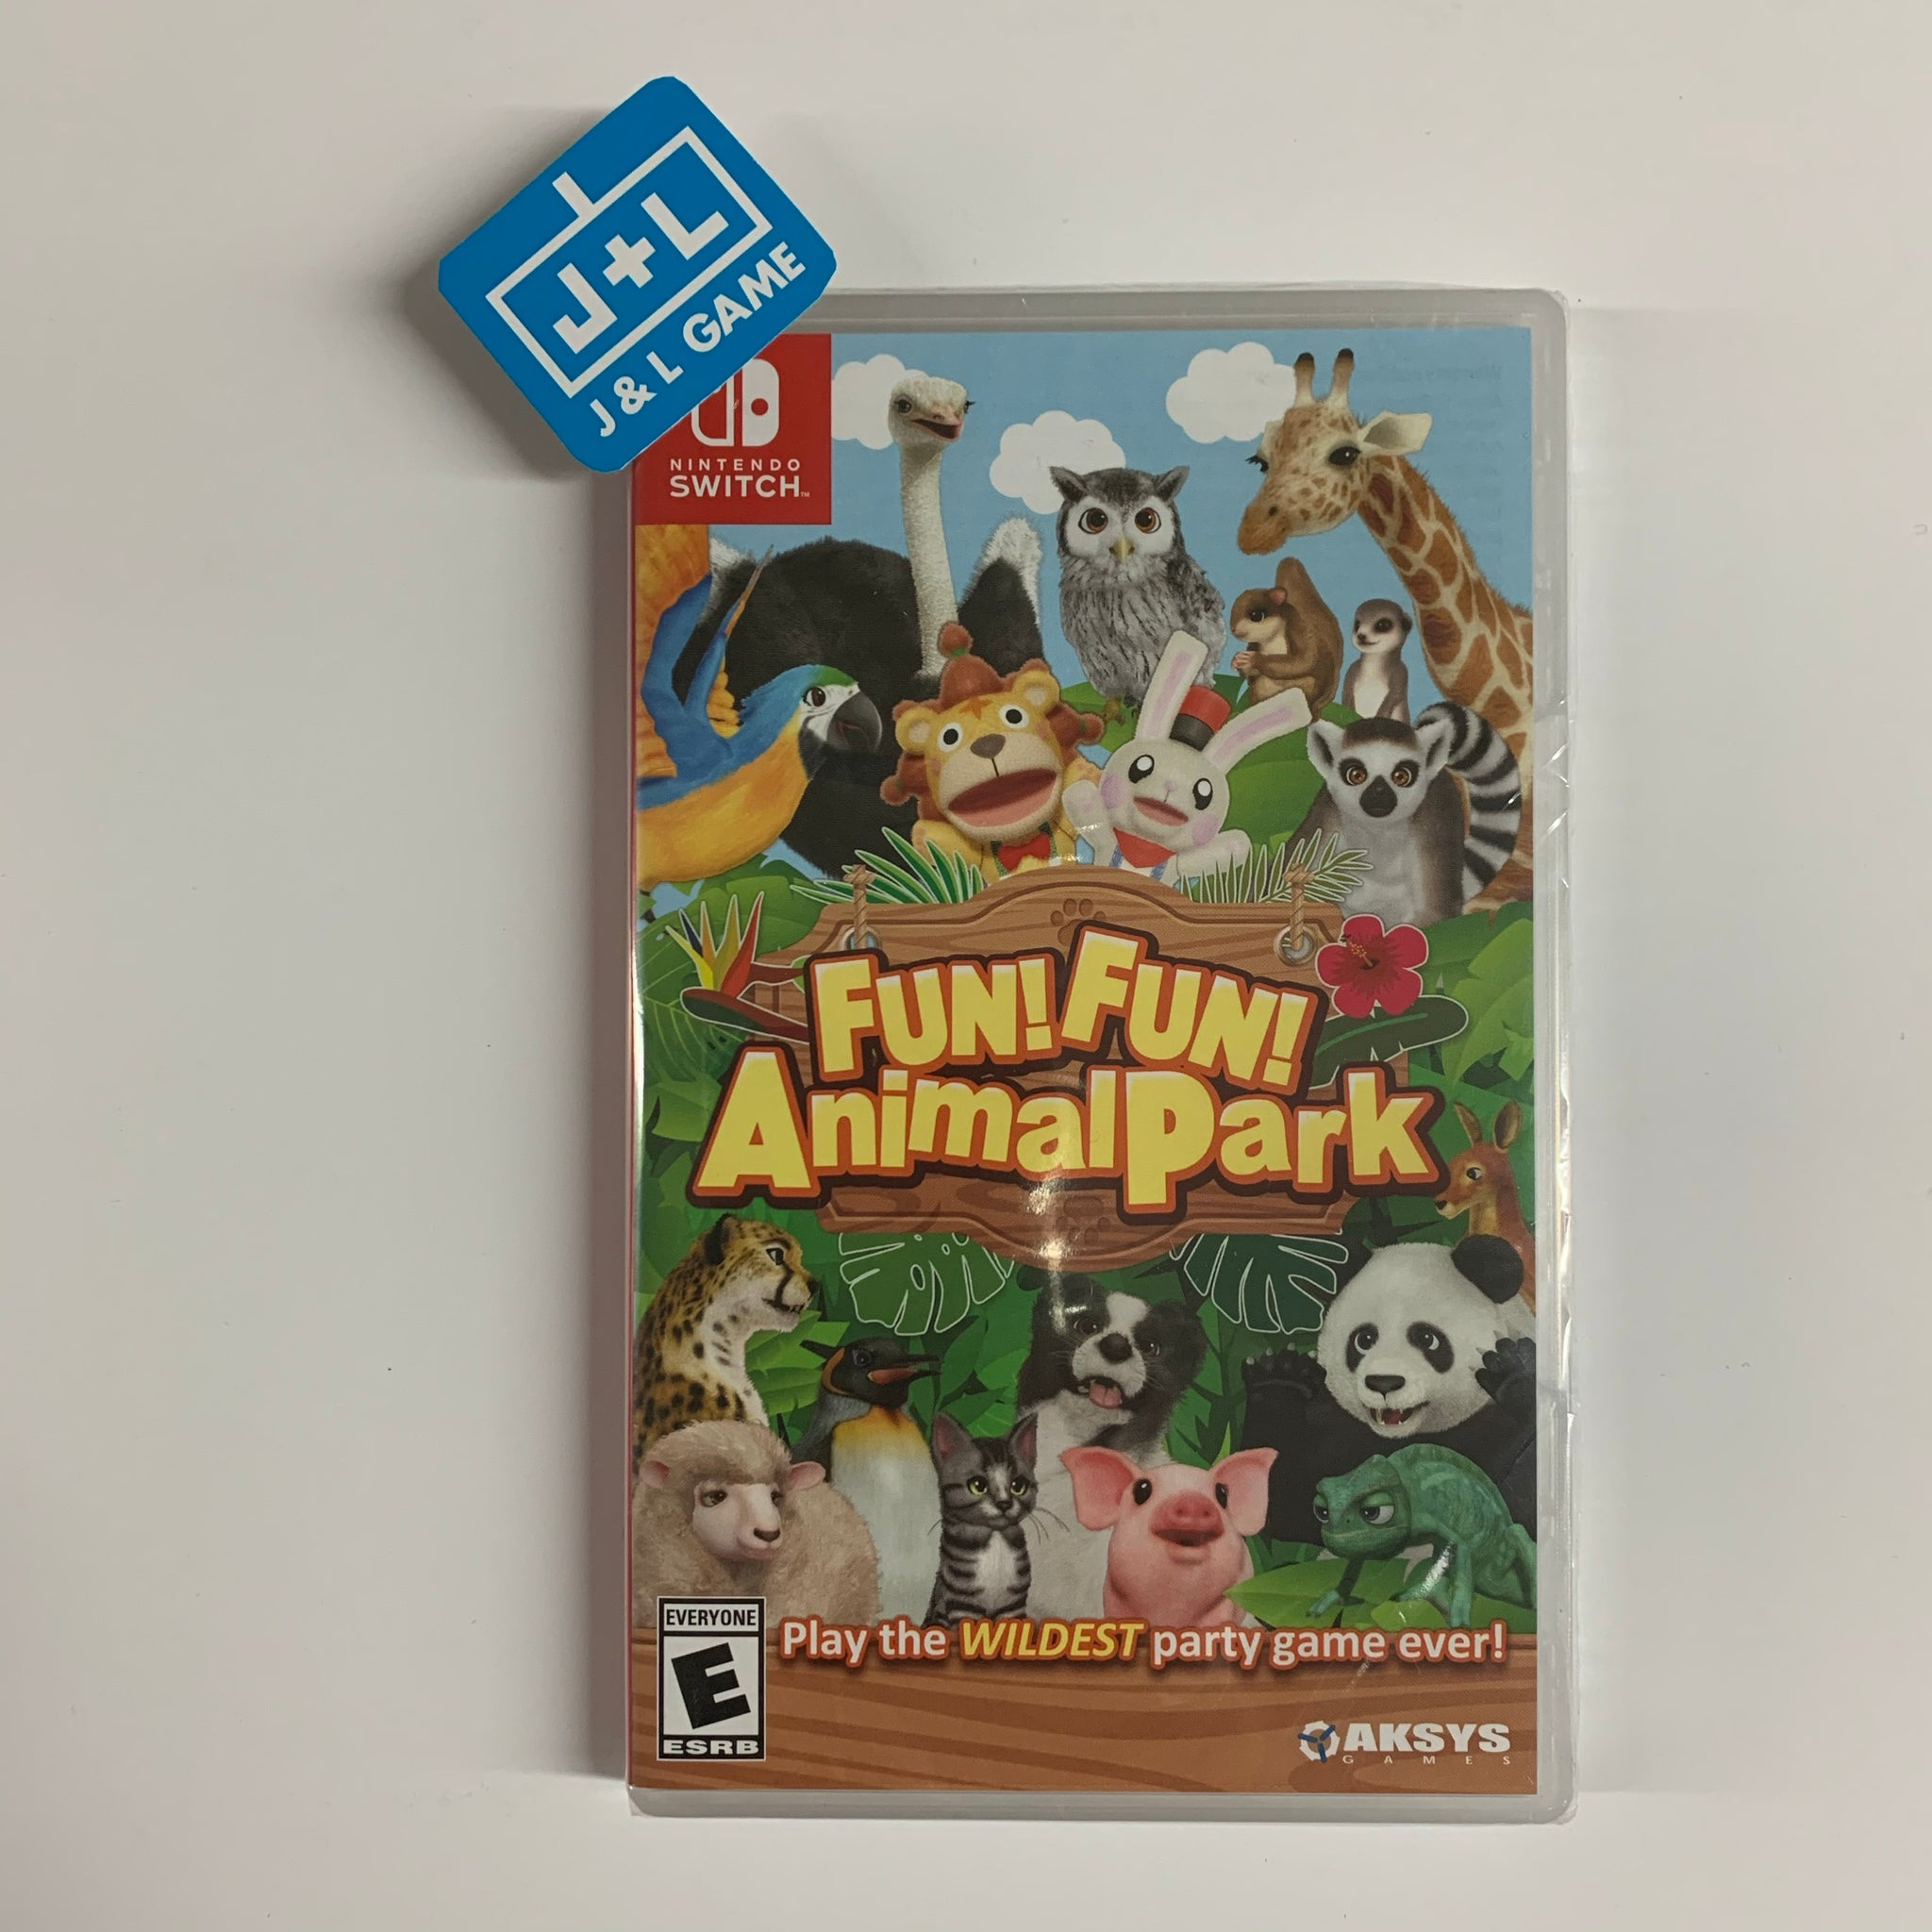 FUN! FUN! Animal Park - Nintendo Switch [NEW]